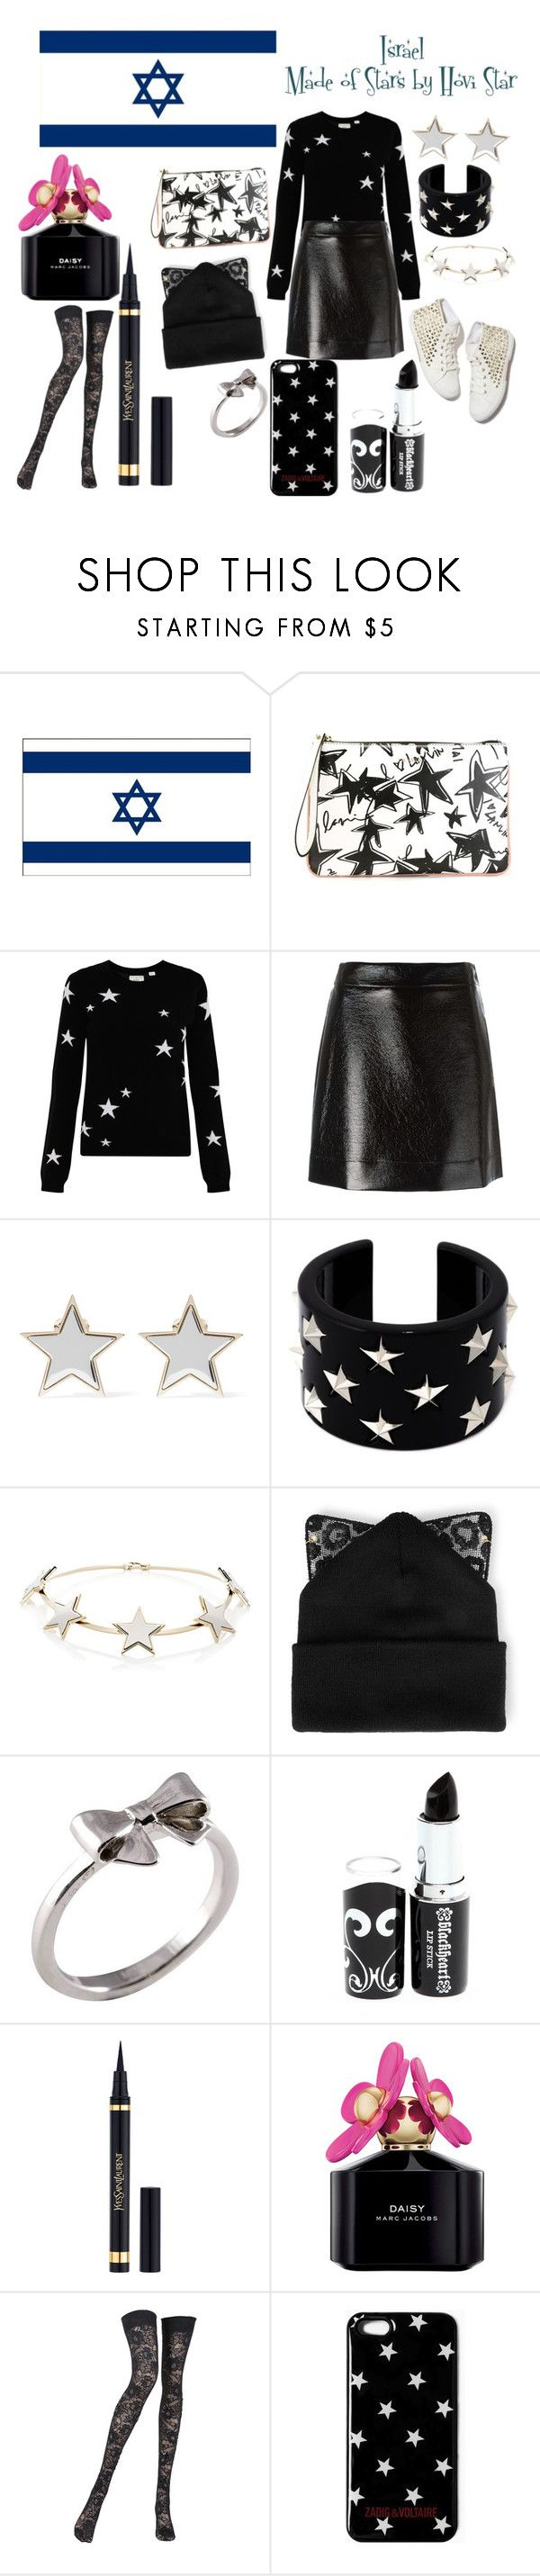 """Israel Eurovision 2016"" by grace-buerklin ❤ liked on Polyvore featuring Lanvin, Chinti and Parker, MICHAEL Michael Kors, Givenchy, RED Valentino, Silver Spoon Attire, Joy Everley, Yves Saint Laurent, Marc Jacobs and Pierre Mantoux"